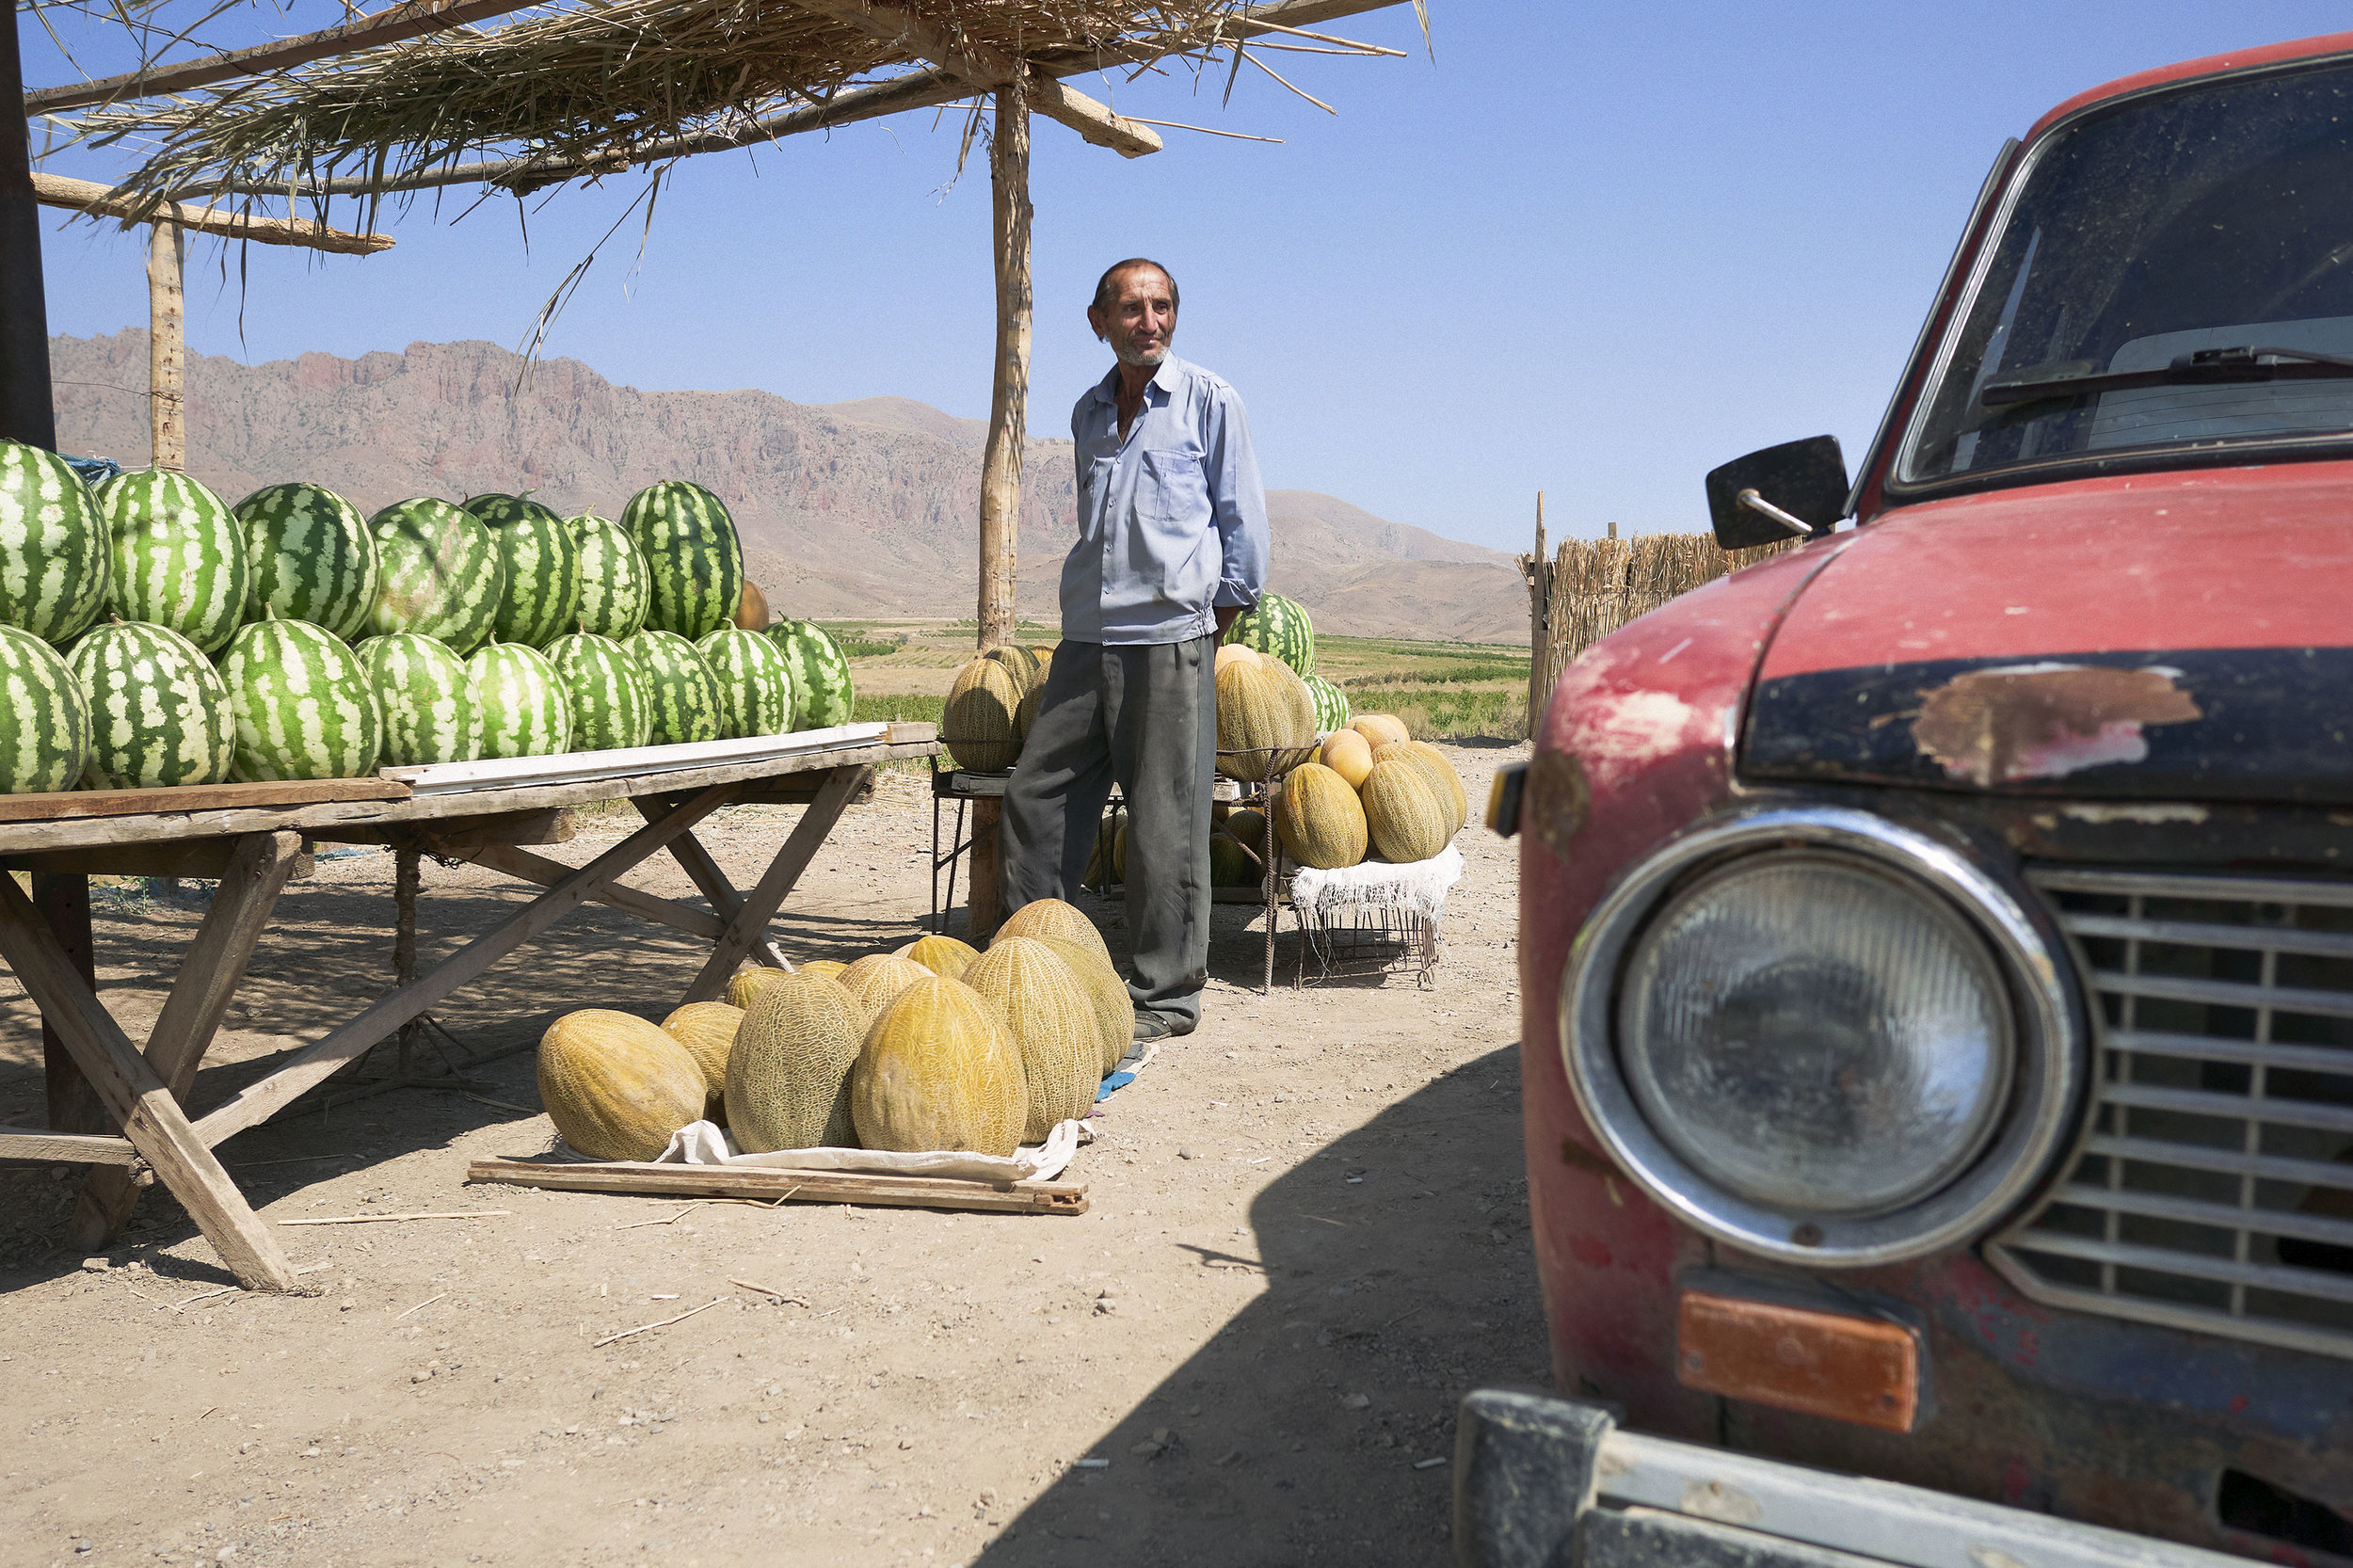 Armenia-Vayots-Dzor-man-along-road-selling-watermelons